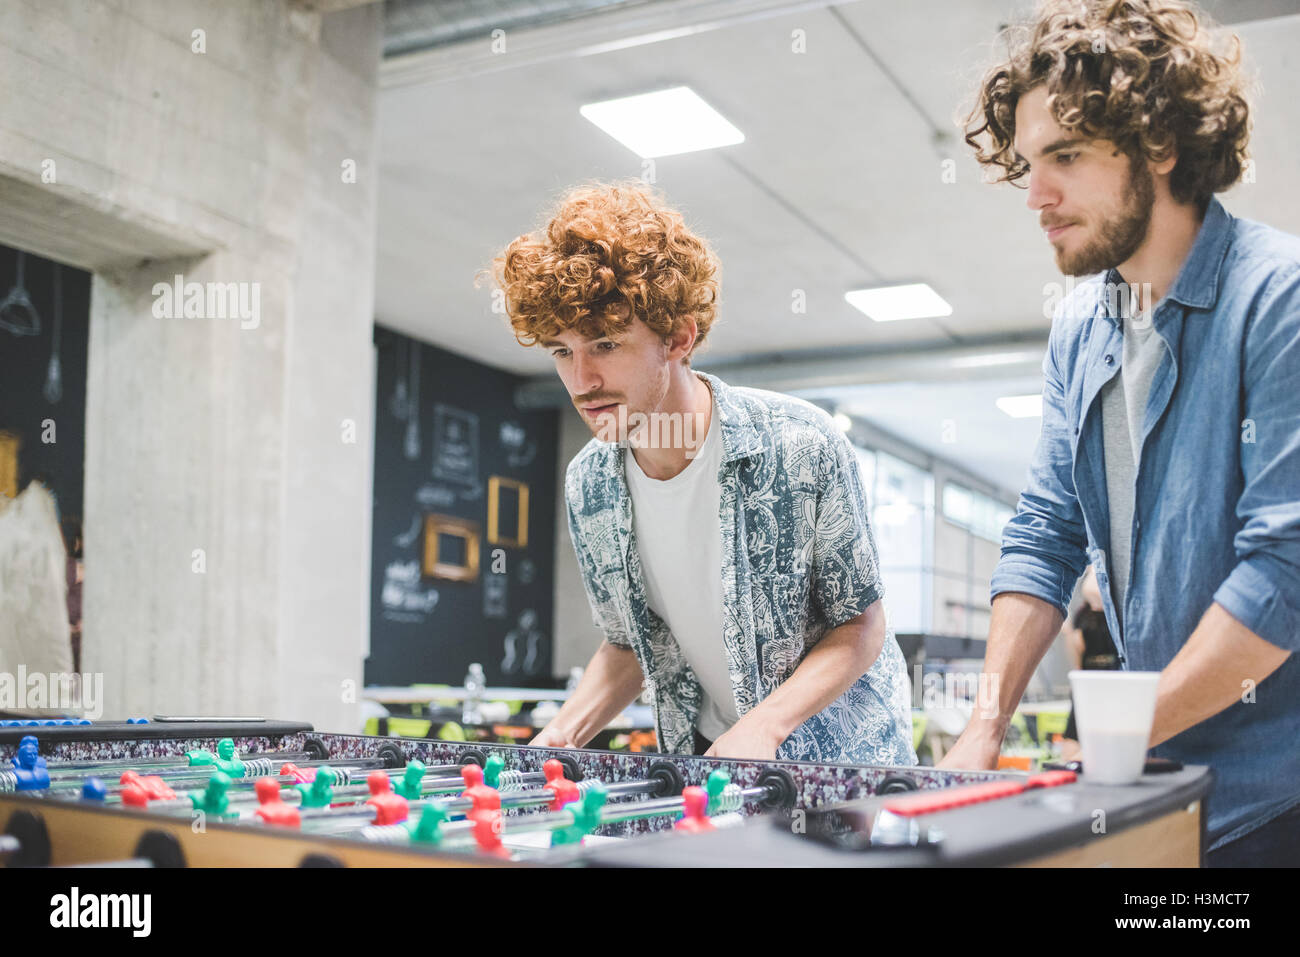 Co-workers playing foosball at break - Stock Image